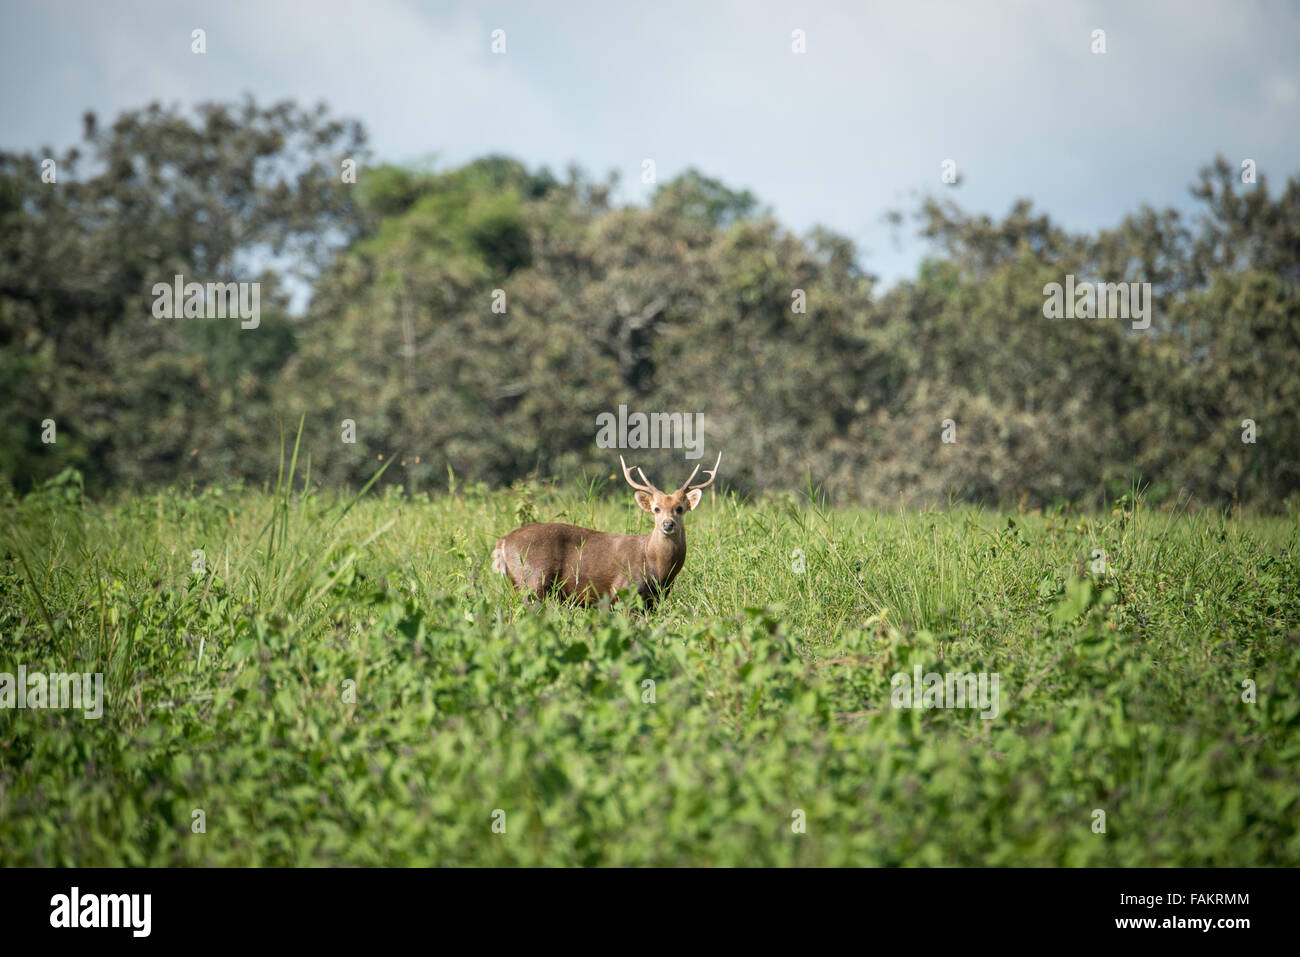 Once widespread and relatively abundant, the hog deer has suffered dramatic declines in Thailand. - Stock Image